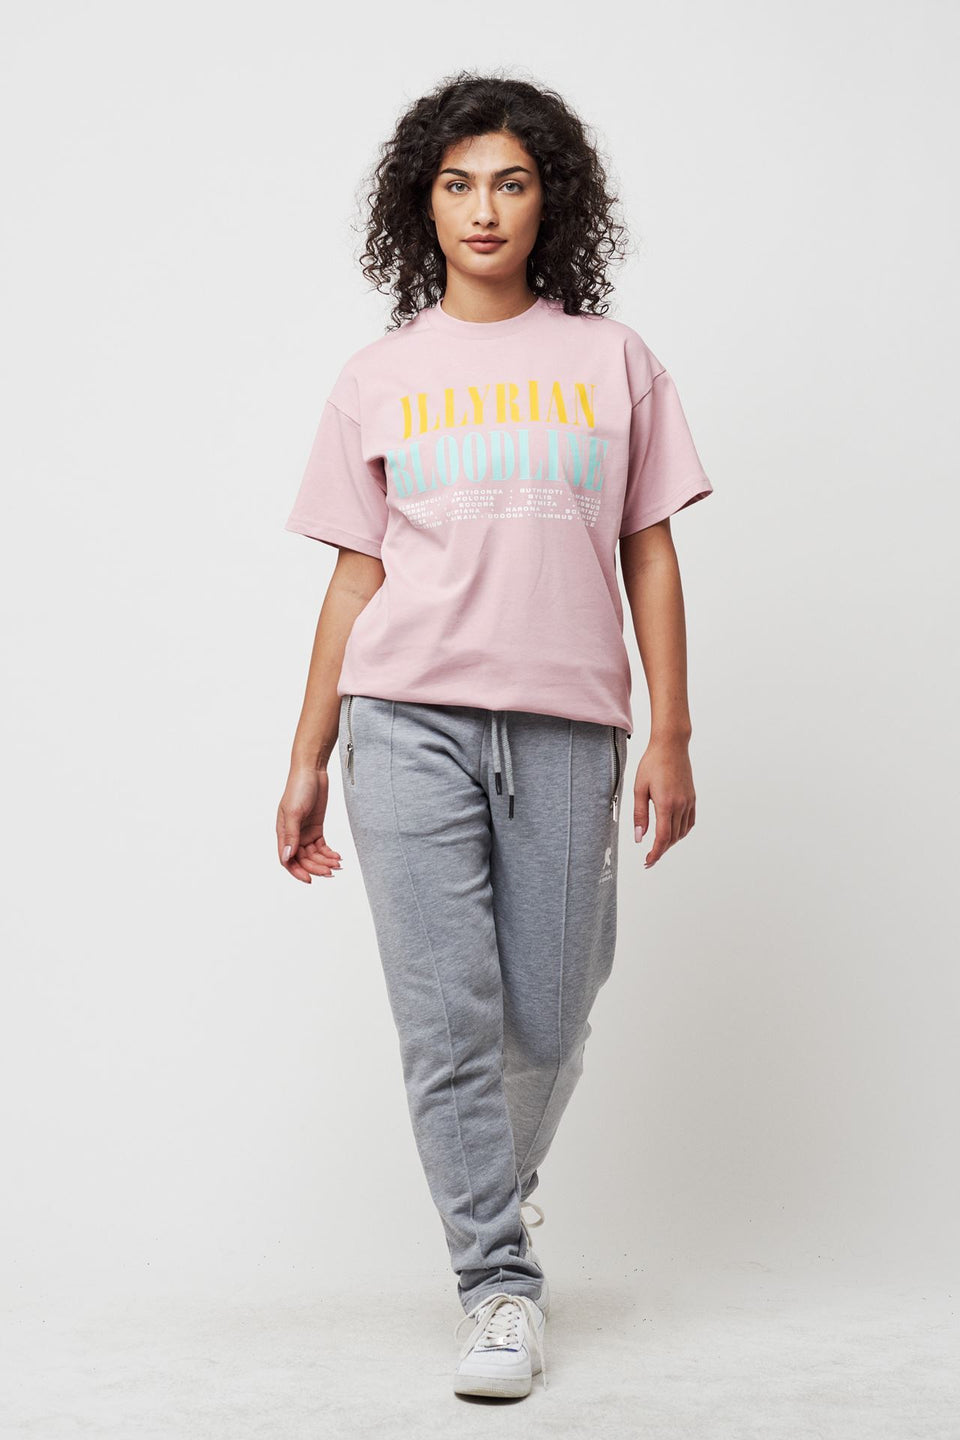 I'll See You In Illyria - Dusty Pink Tee